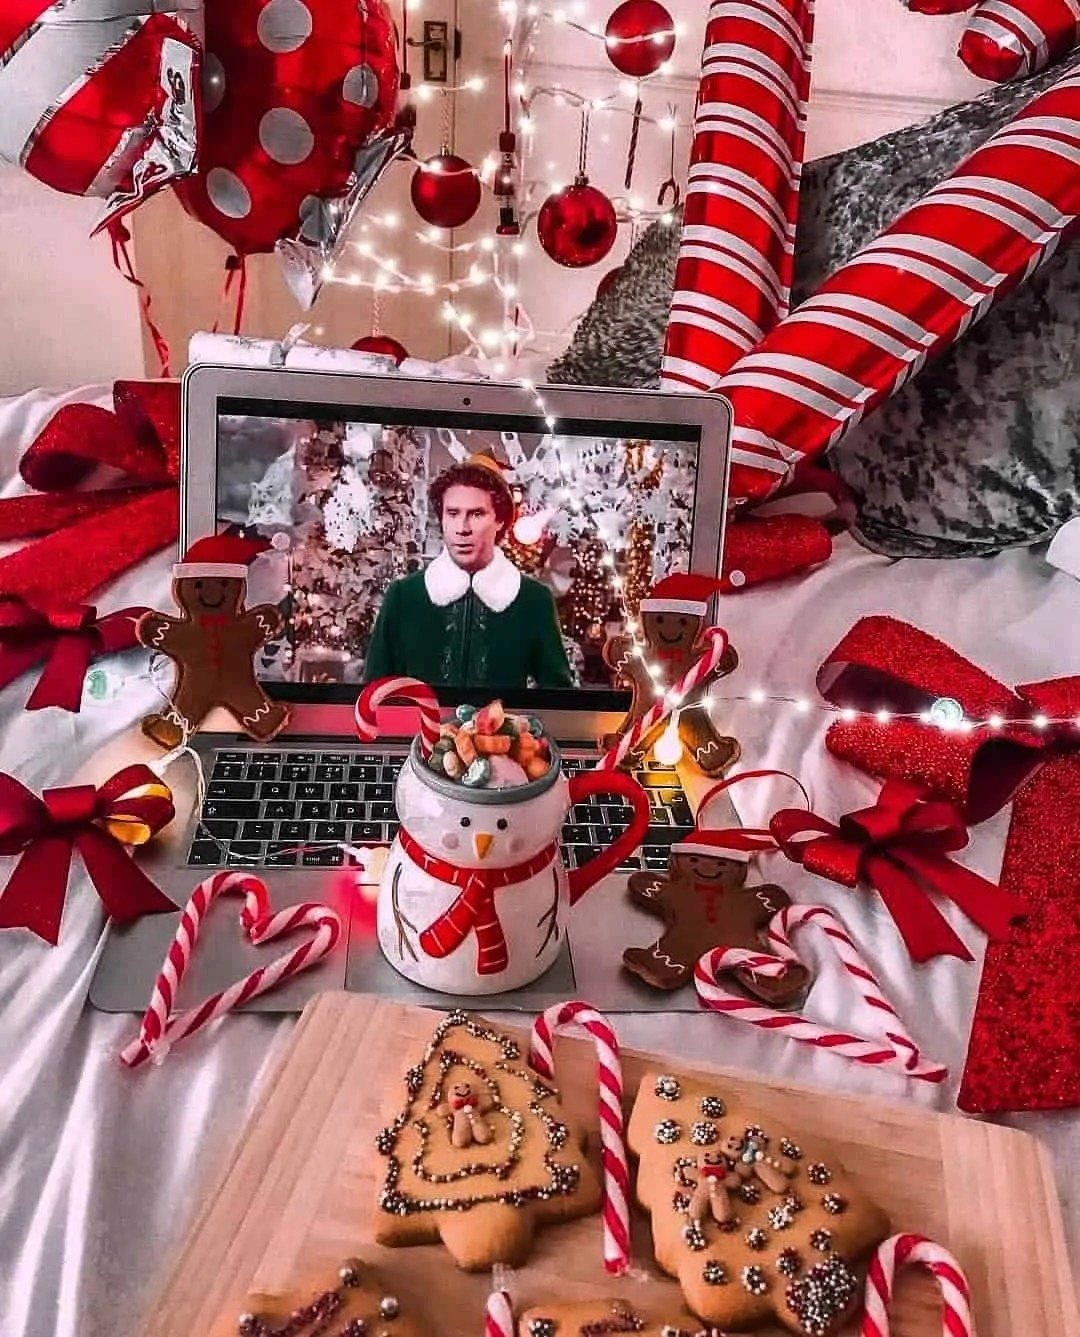 30 Christmas Aesthetic Images you must see: WARNING you will get Christmas mood INSTANTLY! 151